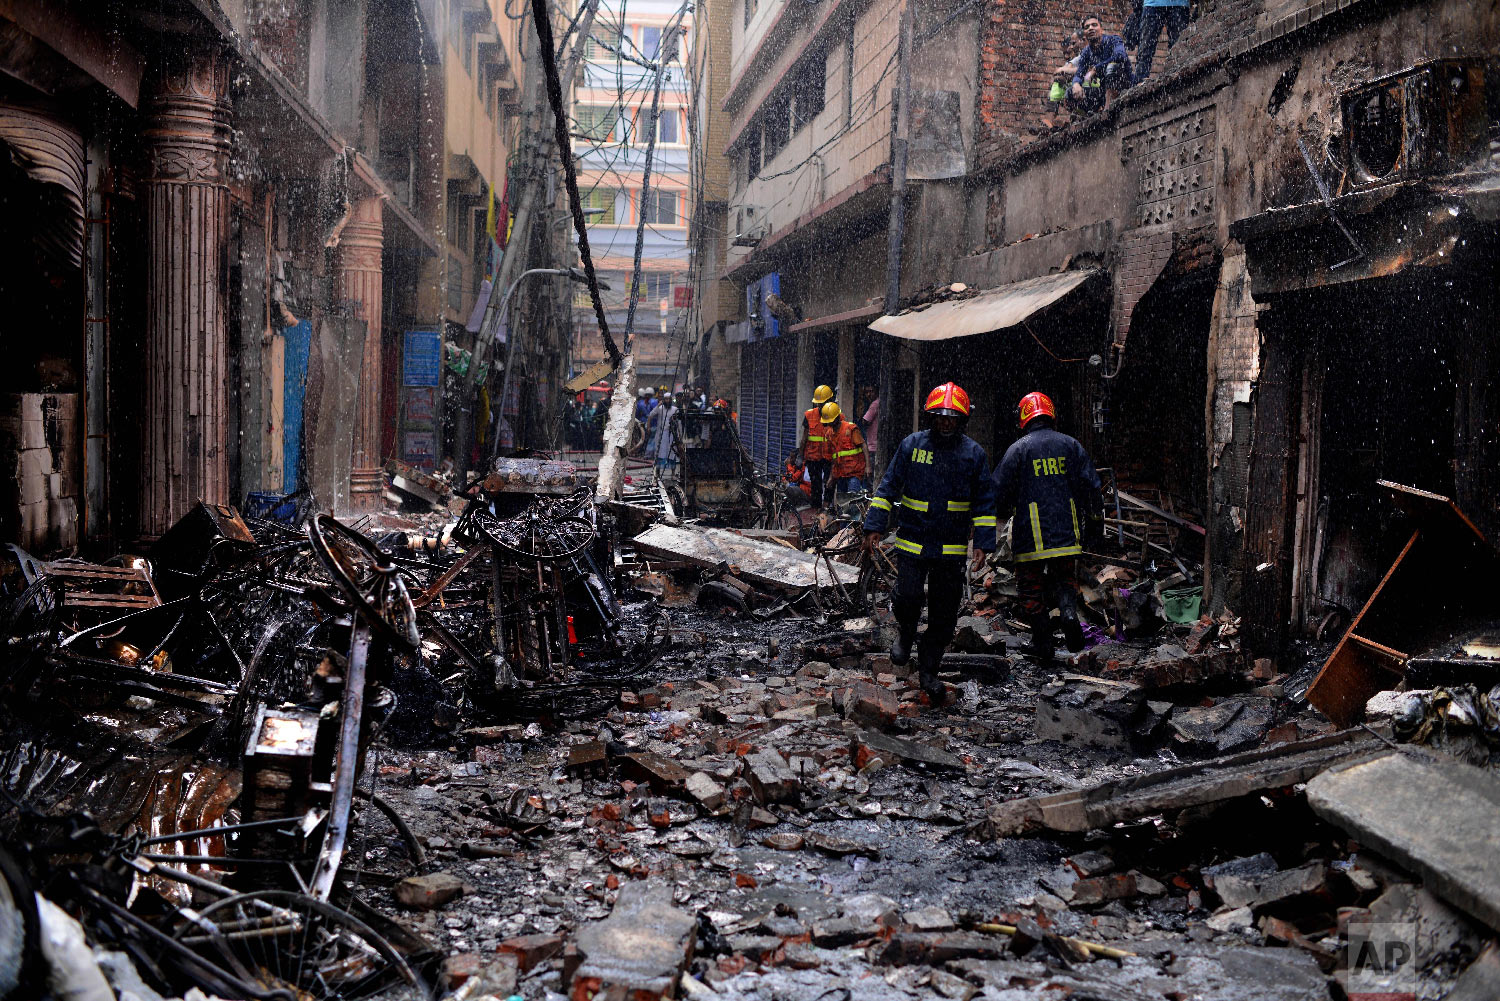 Firefighters gather around buildings that caught fire late Wednesday night in Dhaka, Bangladesh, Thursday, Feb. 21, 2019. (AP Photo/Mahmud Hossain Opu)